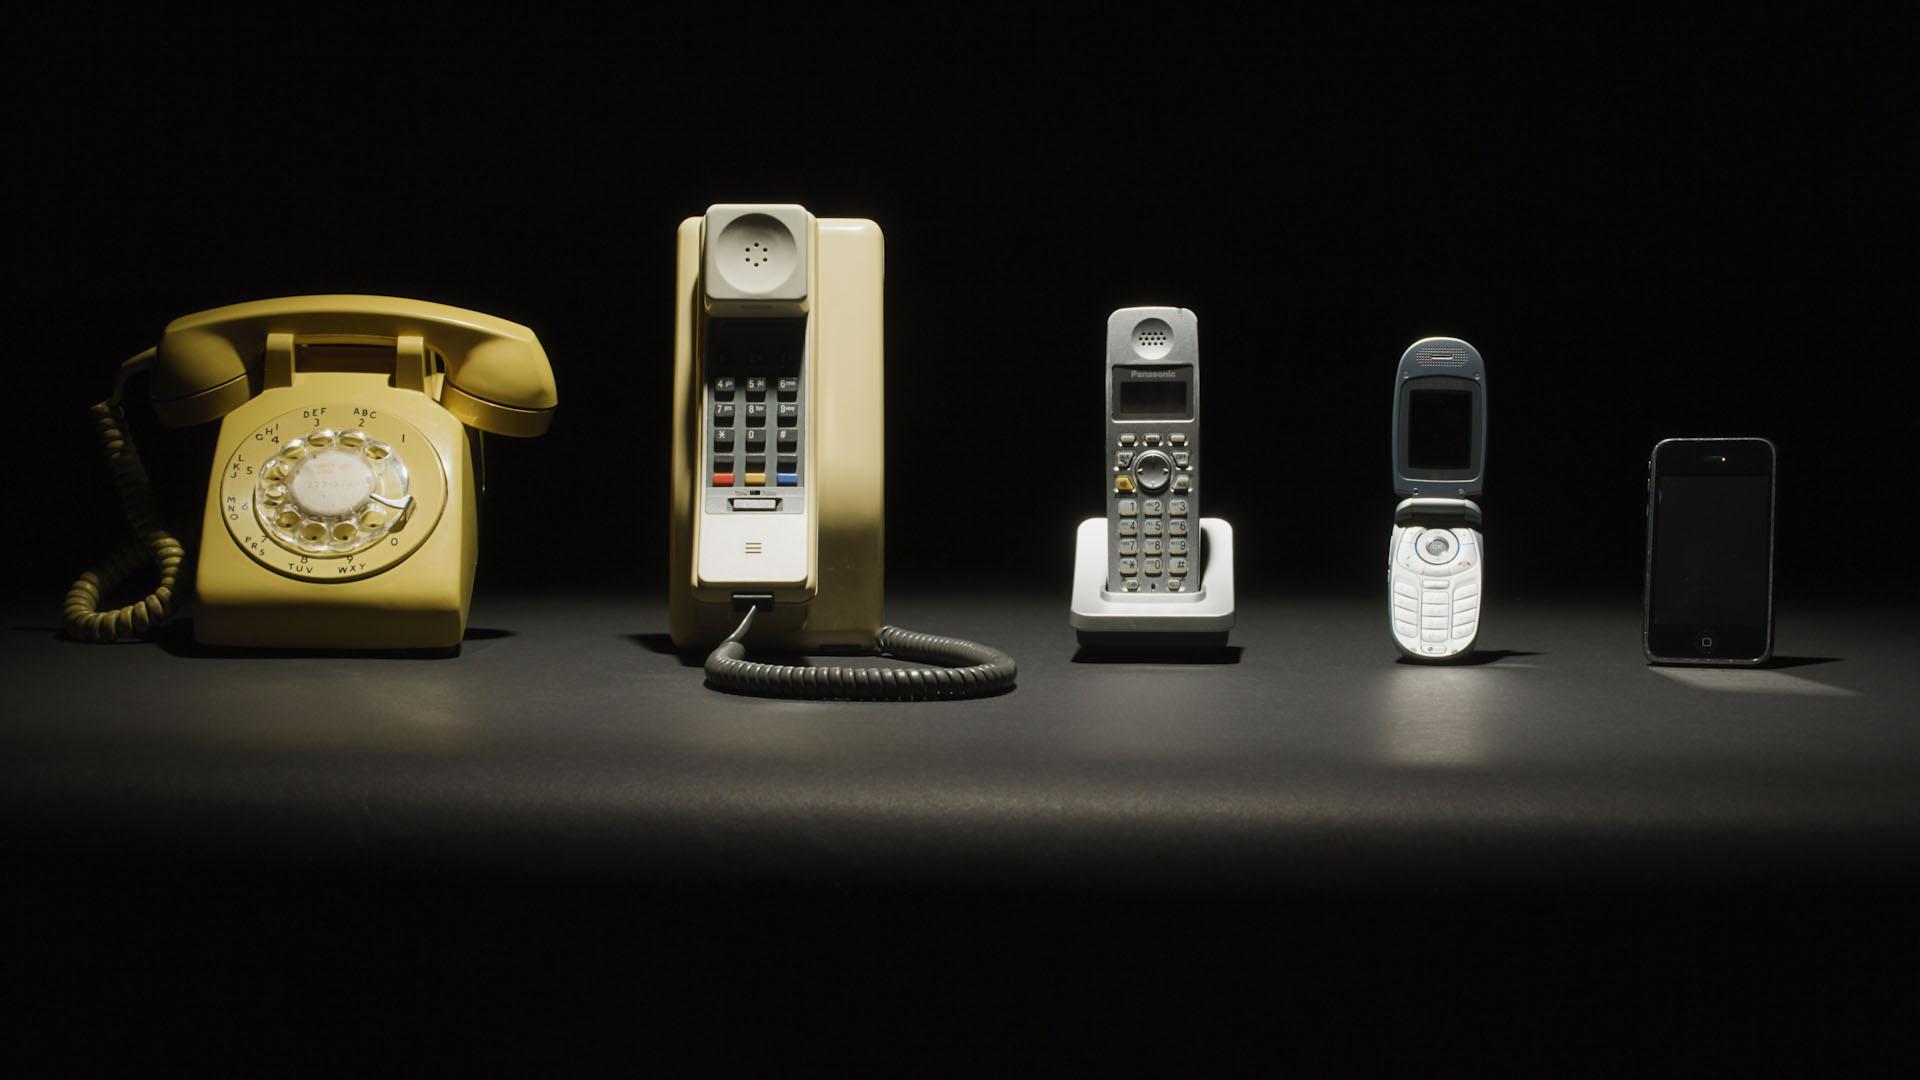 img des: Five phones on a flat surface, each from a different time period to represent five decades.